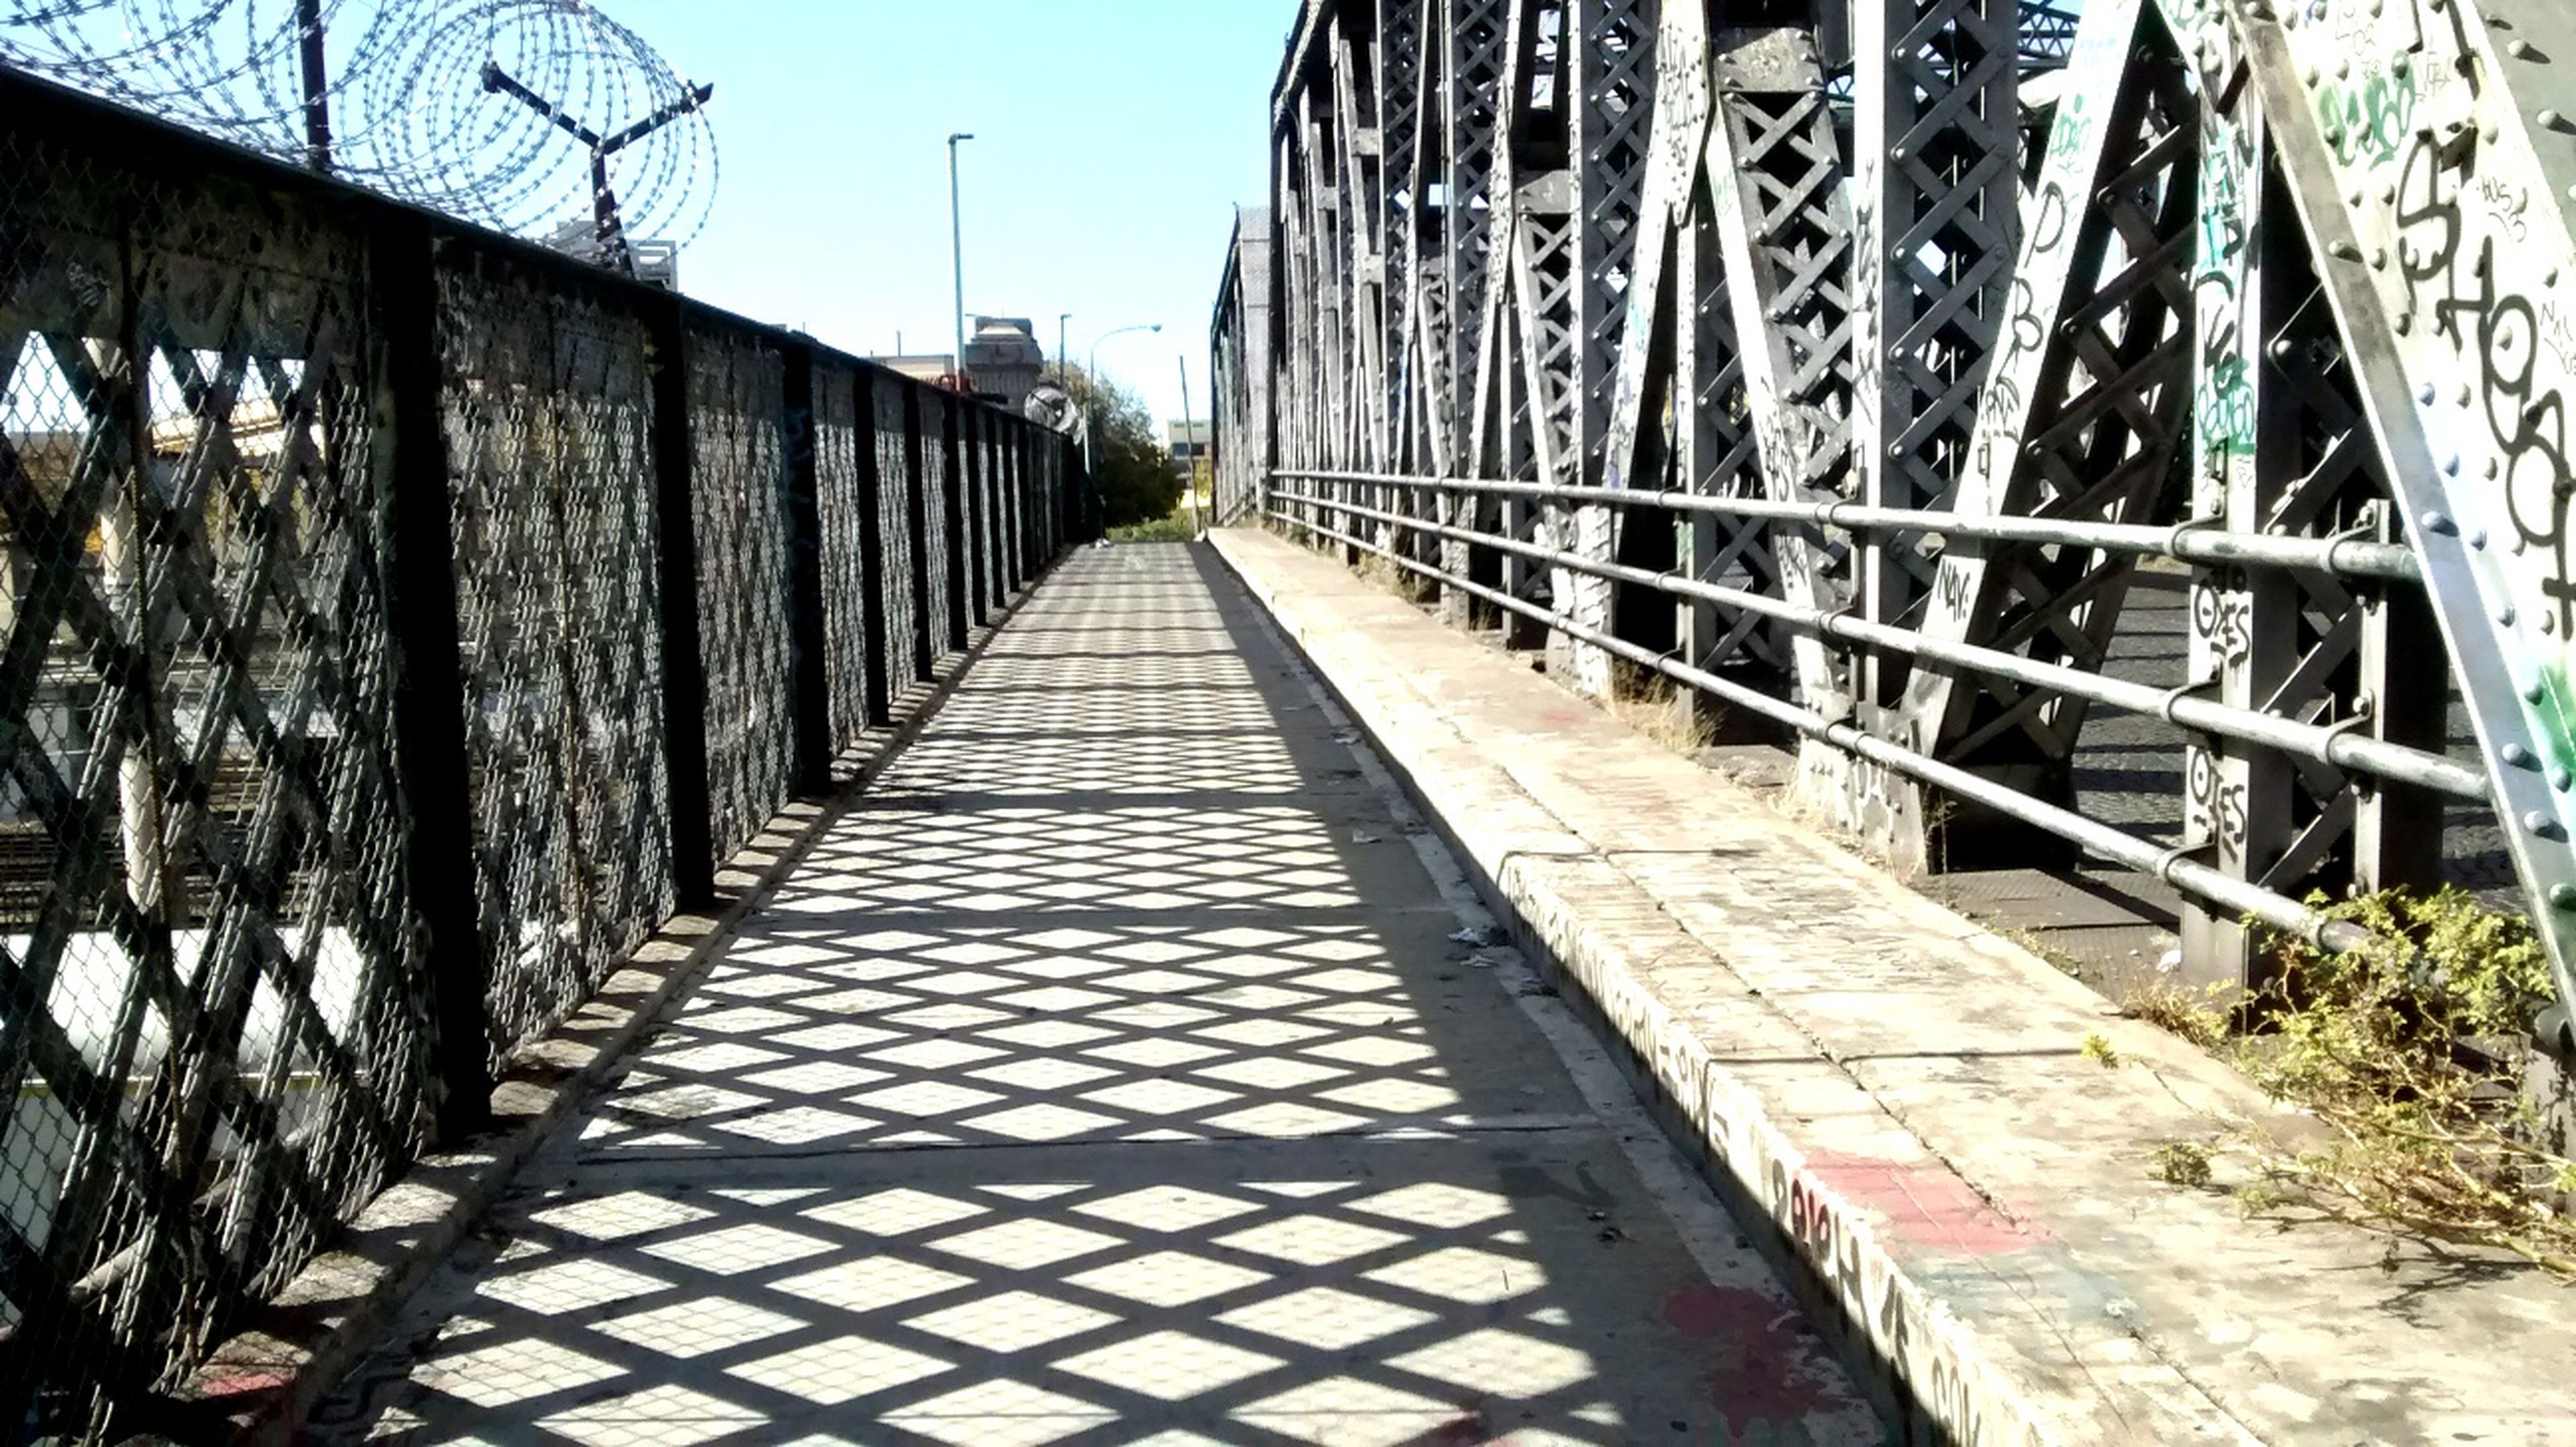 built structure, architecture, the way forward, diminishing perspective, connection, vanishing point, bridge - man made structure, railing, long, sky, footbridge, building exterior, tree, metal, day, sunlight, outdoors, narrow, clear sky, walkway